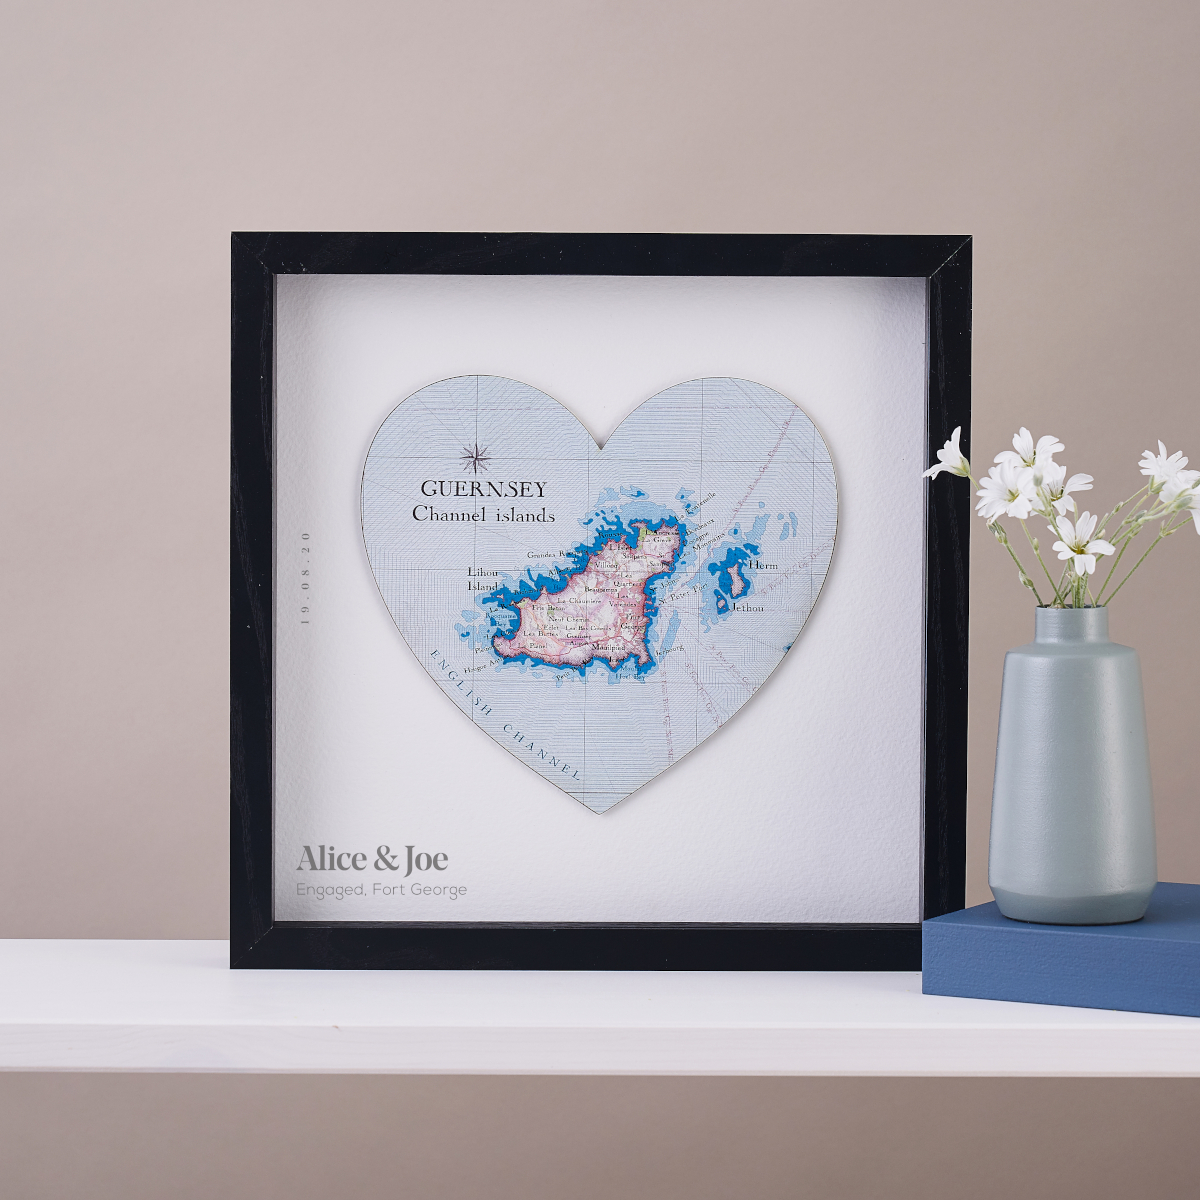 Personalised Map Heart Frame of Guernsey